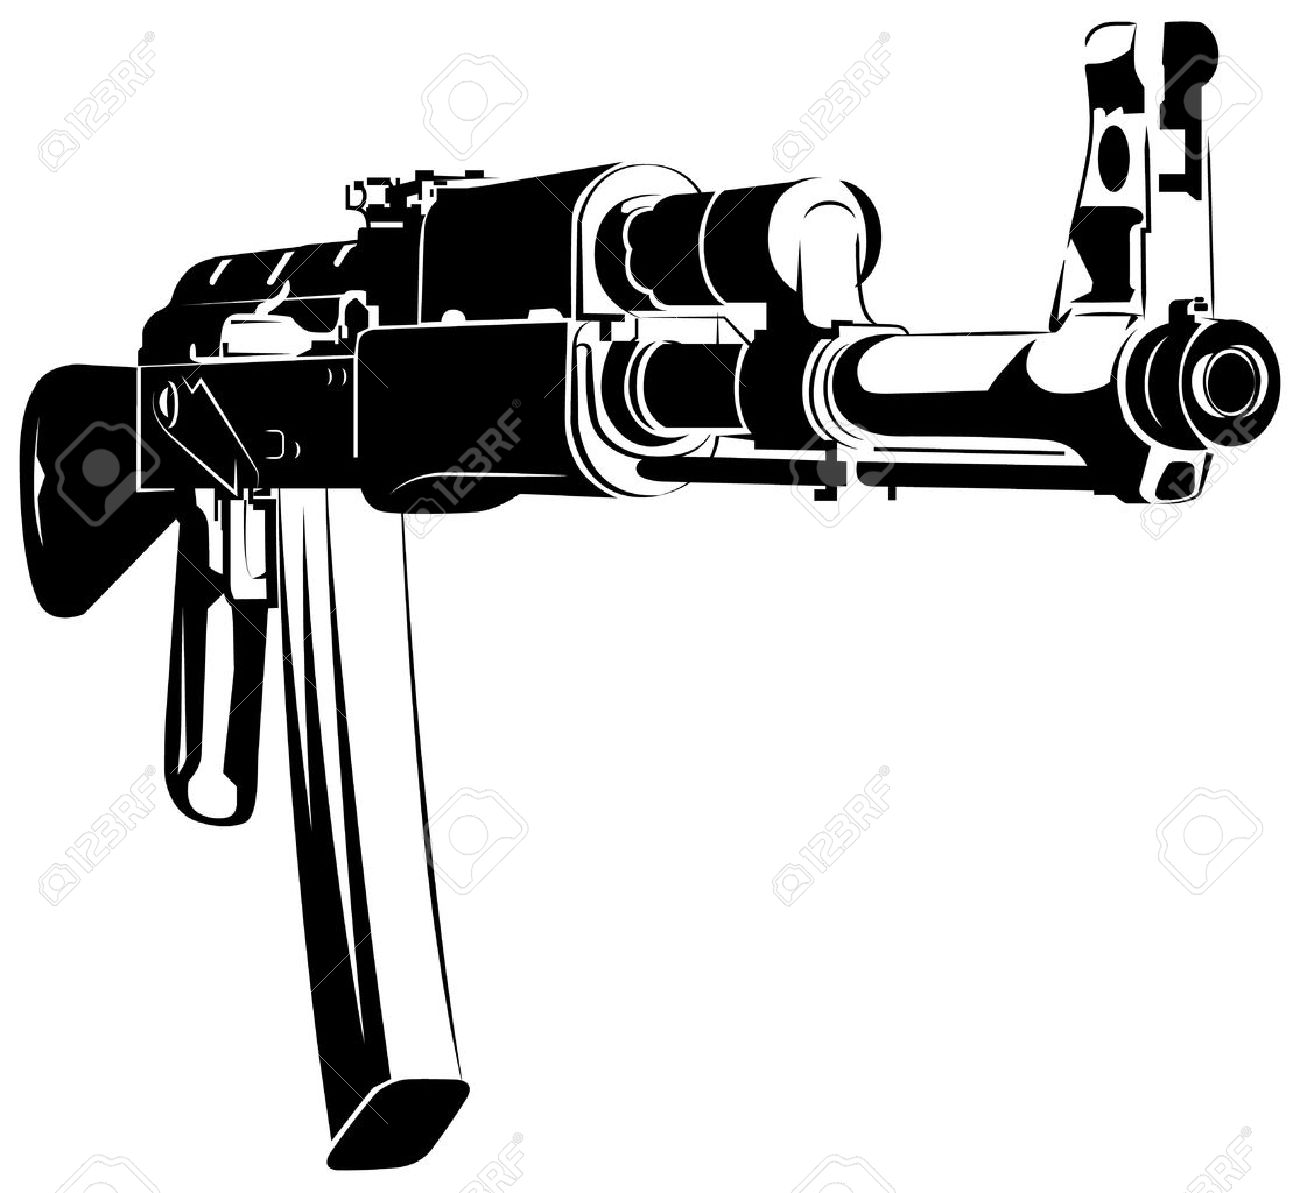 vector illustration black and white machine gun ak 47 isolated rh 123rf com ak 47 vector png ak 47 vector image